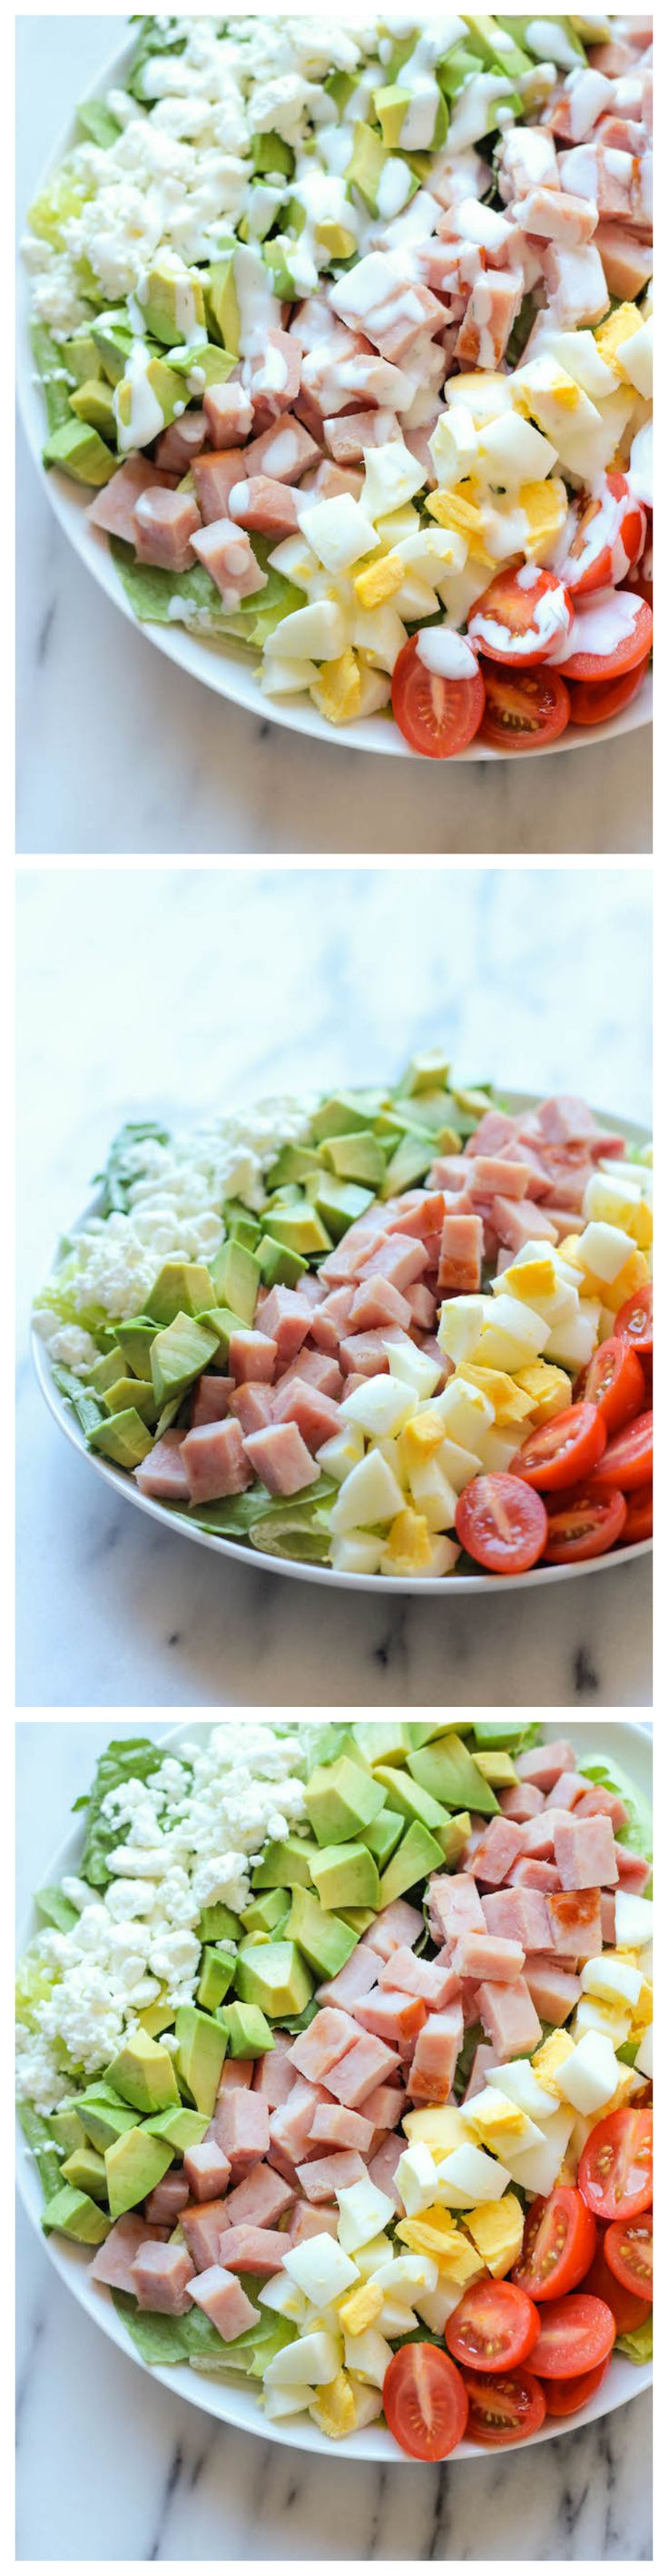 Leftover Thanksgiving Ham Cobb Salad - Use up your leftover ham in this glorious cobb salad with a healthy, guiltless Greek yogurt ranch dressing! It's the perfect post-Thanksgiving detox!